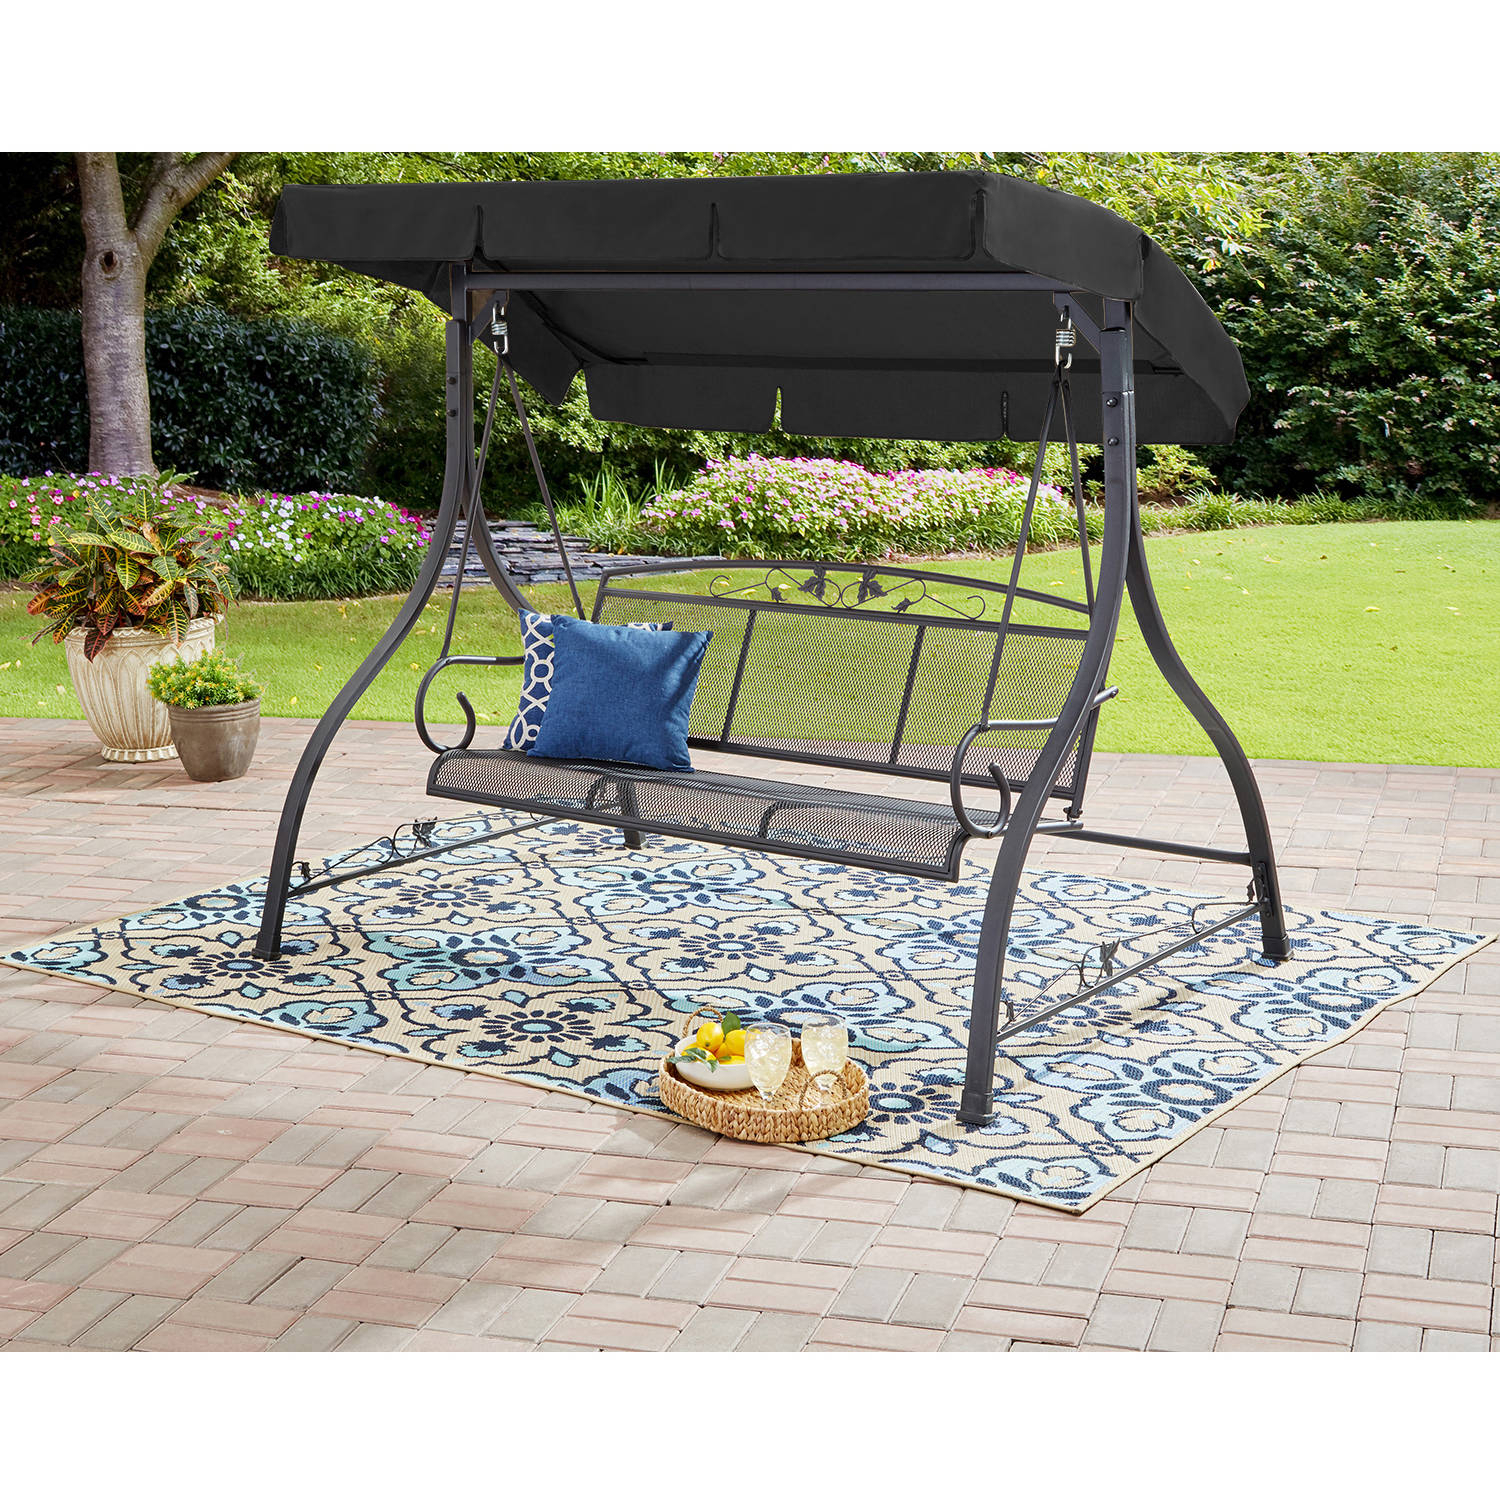 Mainstays Jefferson 3 Person Outdoor Canopy Porch Swing – Walmart Inside Canopy Porch Swings (Image 15 of 25)